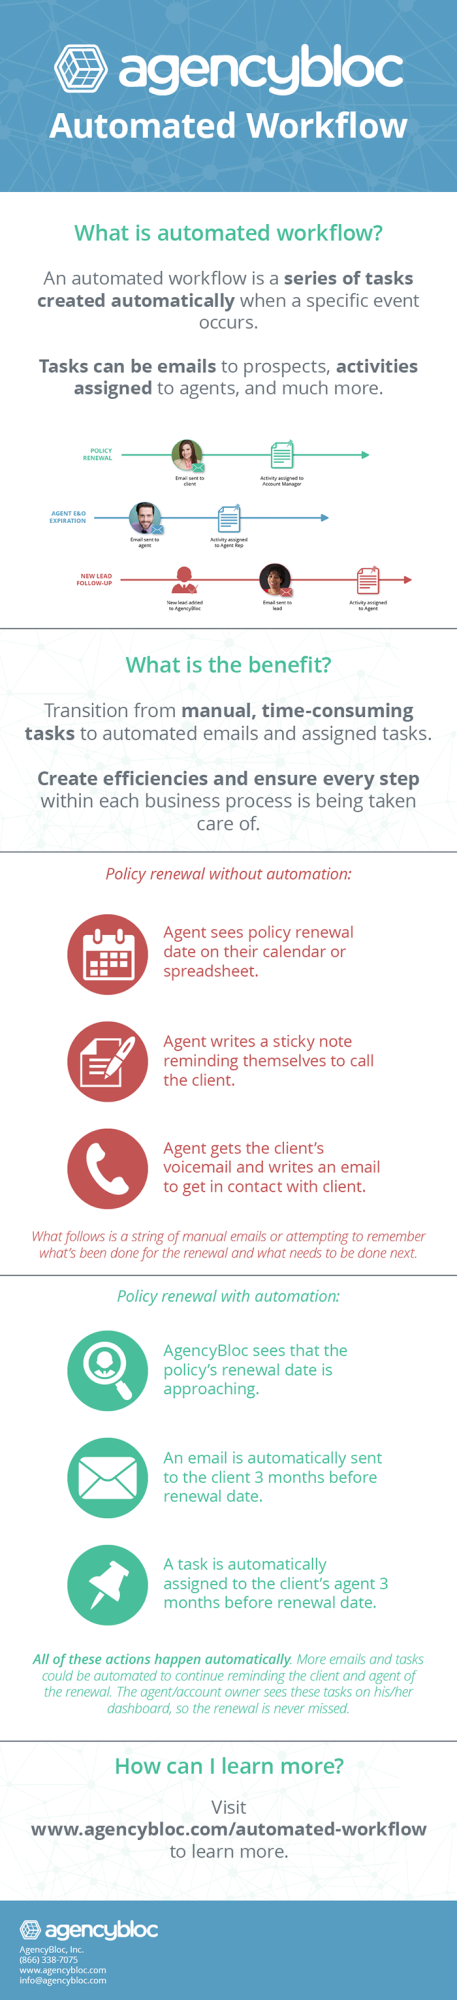 AgencyBloc Automated Workflow infographic